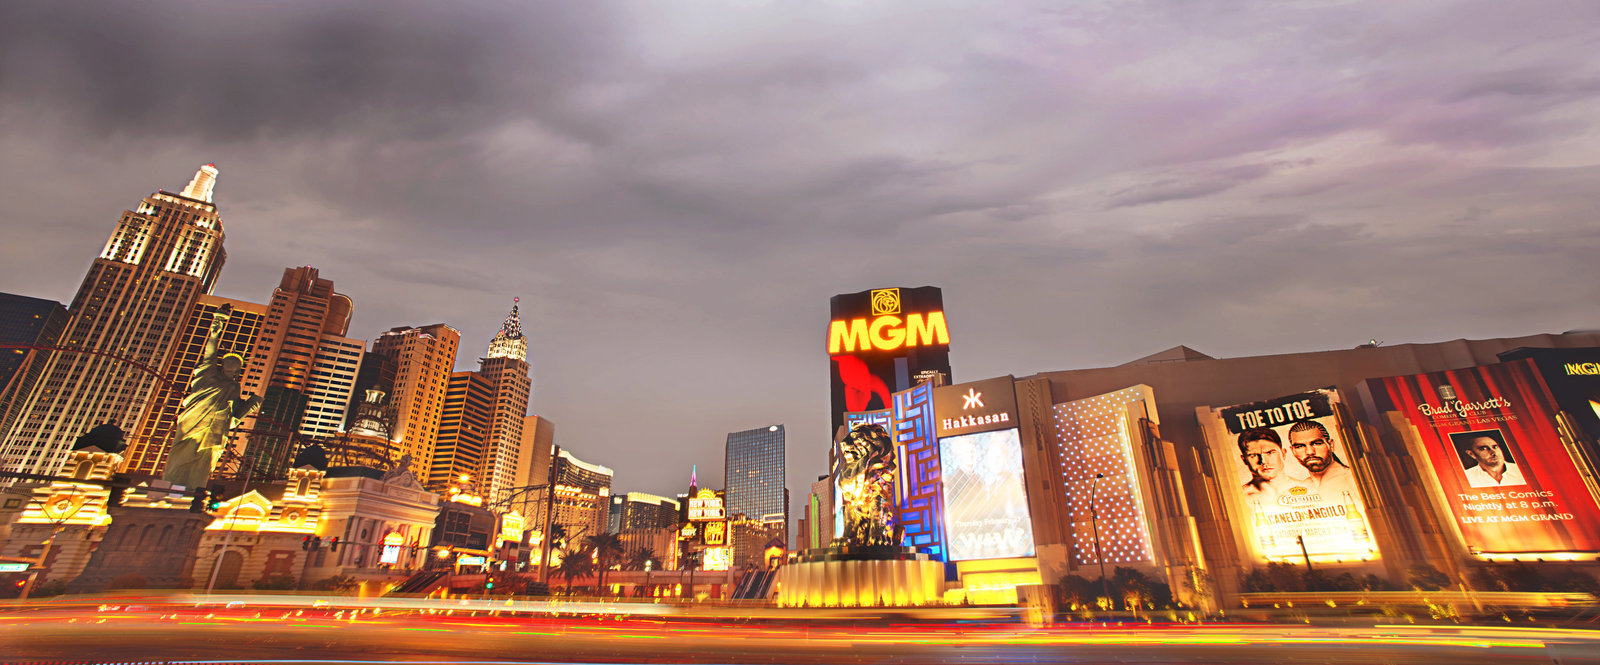 MGM_HDR